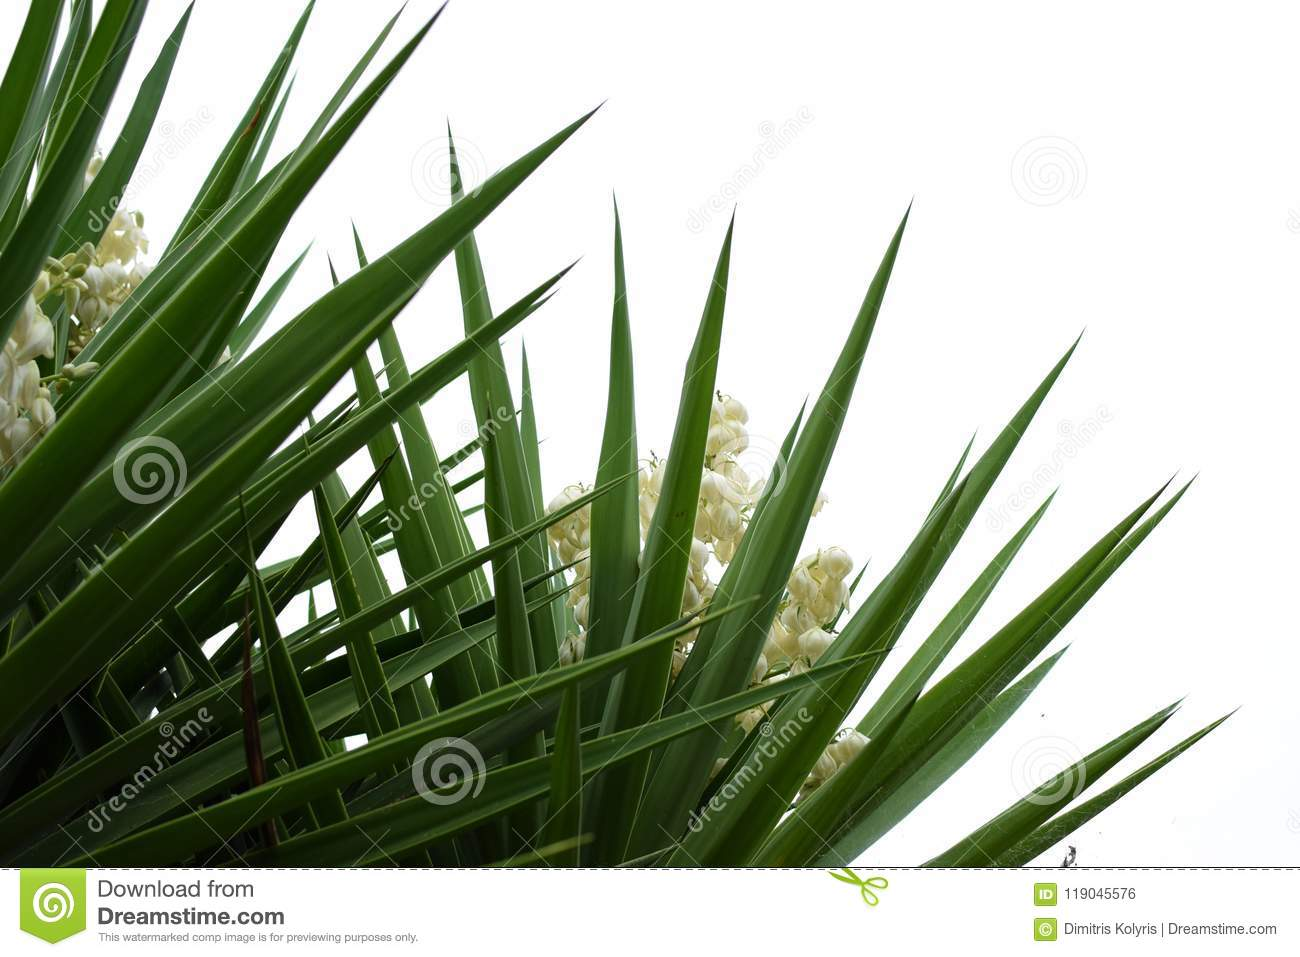 Yucca plant flowers and leaves stock photo image of nature white download yucca plant flowers and leaves stock photo image of nature white 119045576 mightylinksfo